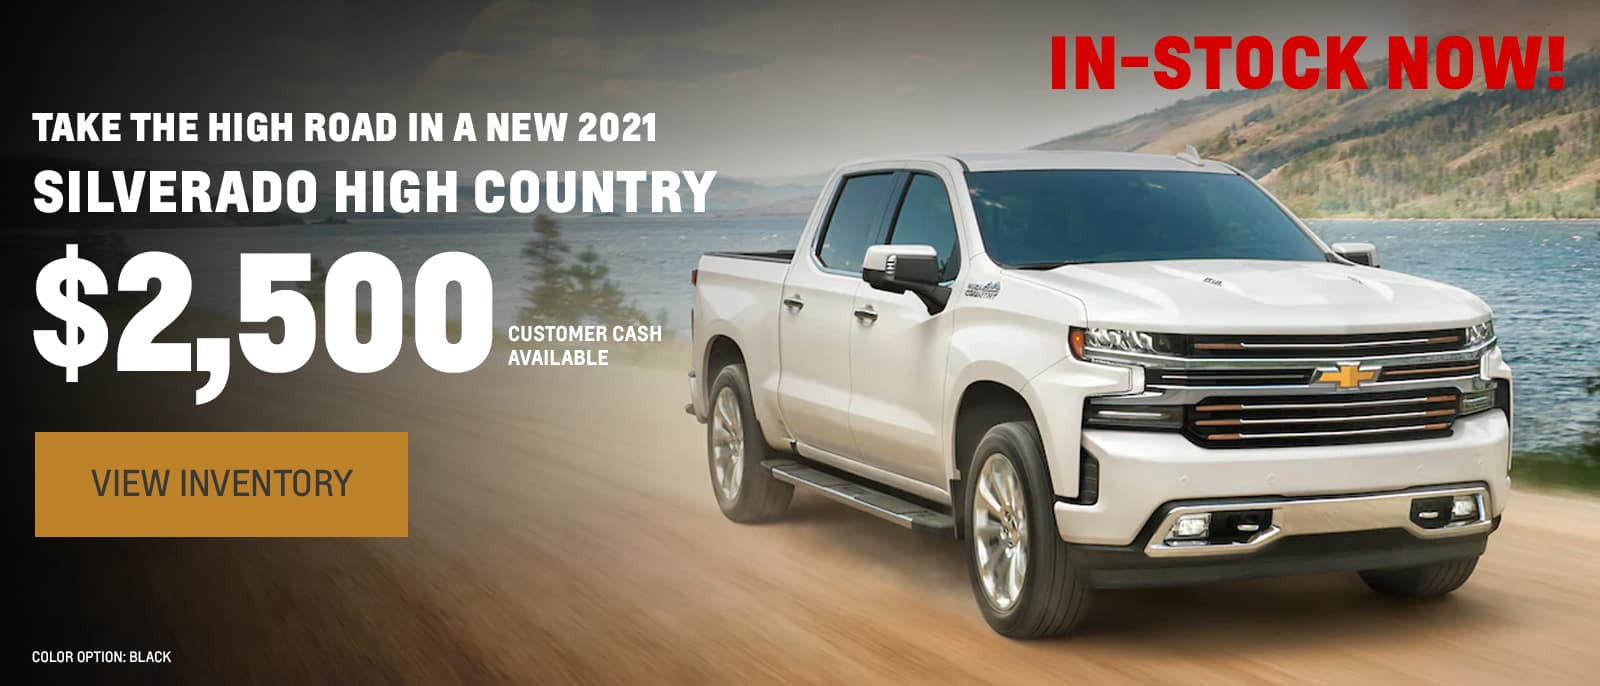 Take the high road in a New 2021 Silverado High Country, $2,500 customer cash available